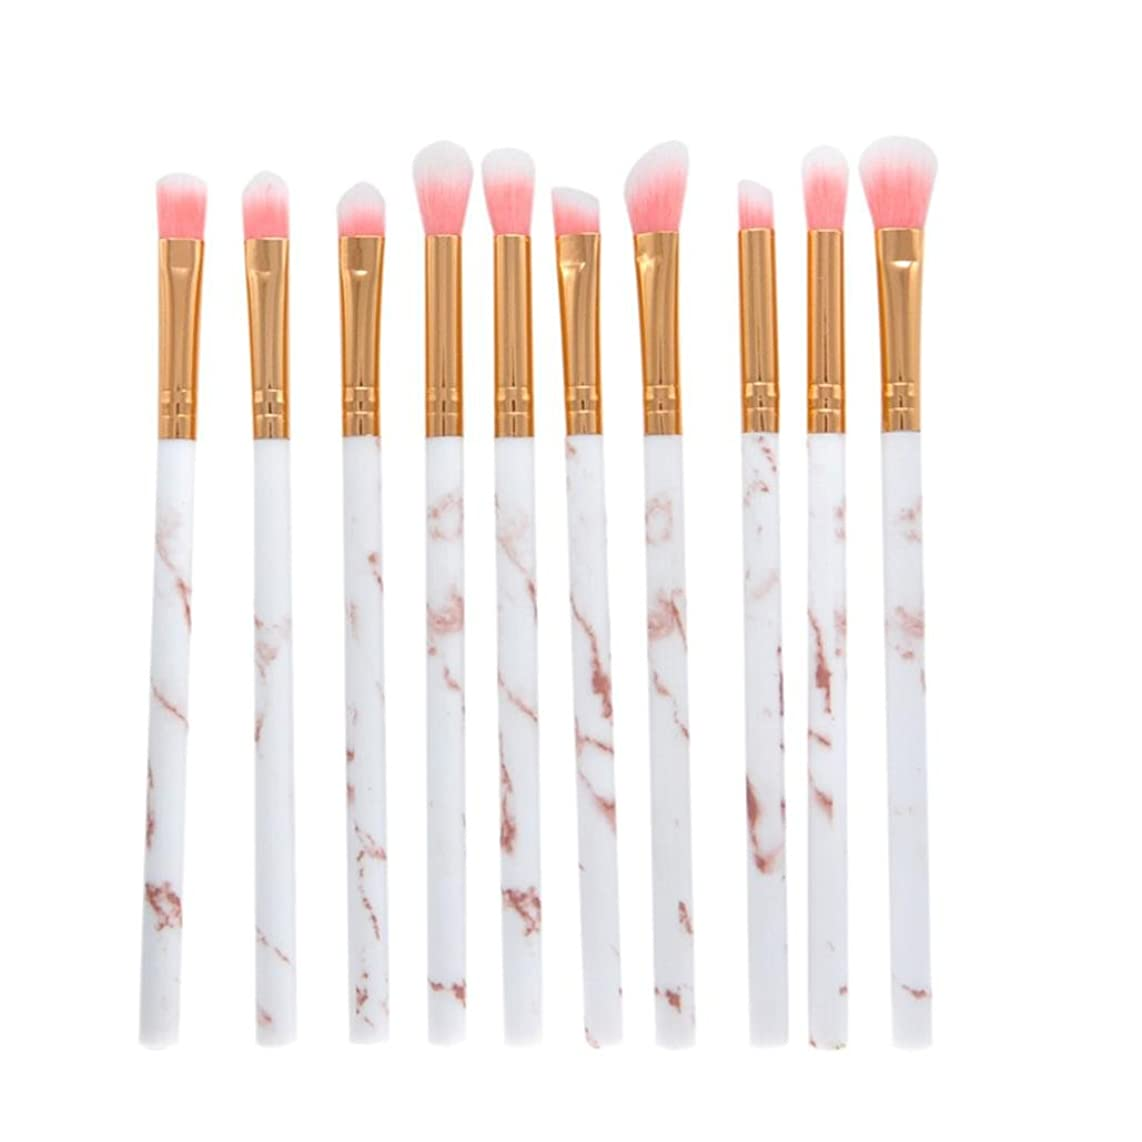 Hot Sale! Makeup Brushes Set for Women, Iuhan 10 Pcs Makeup Brush Set Face Eye Shadow Eyeliner Foundation Blush Lip Makeup Brushes Powder Liquid Cream Cosmetics Blending Brush Tool (Gold)